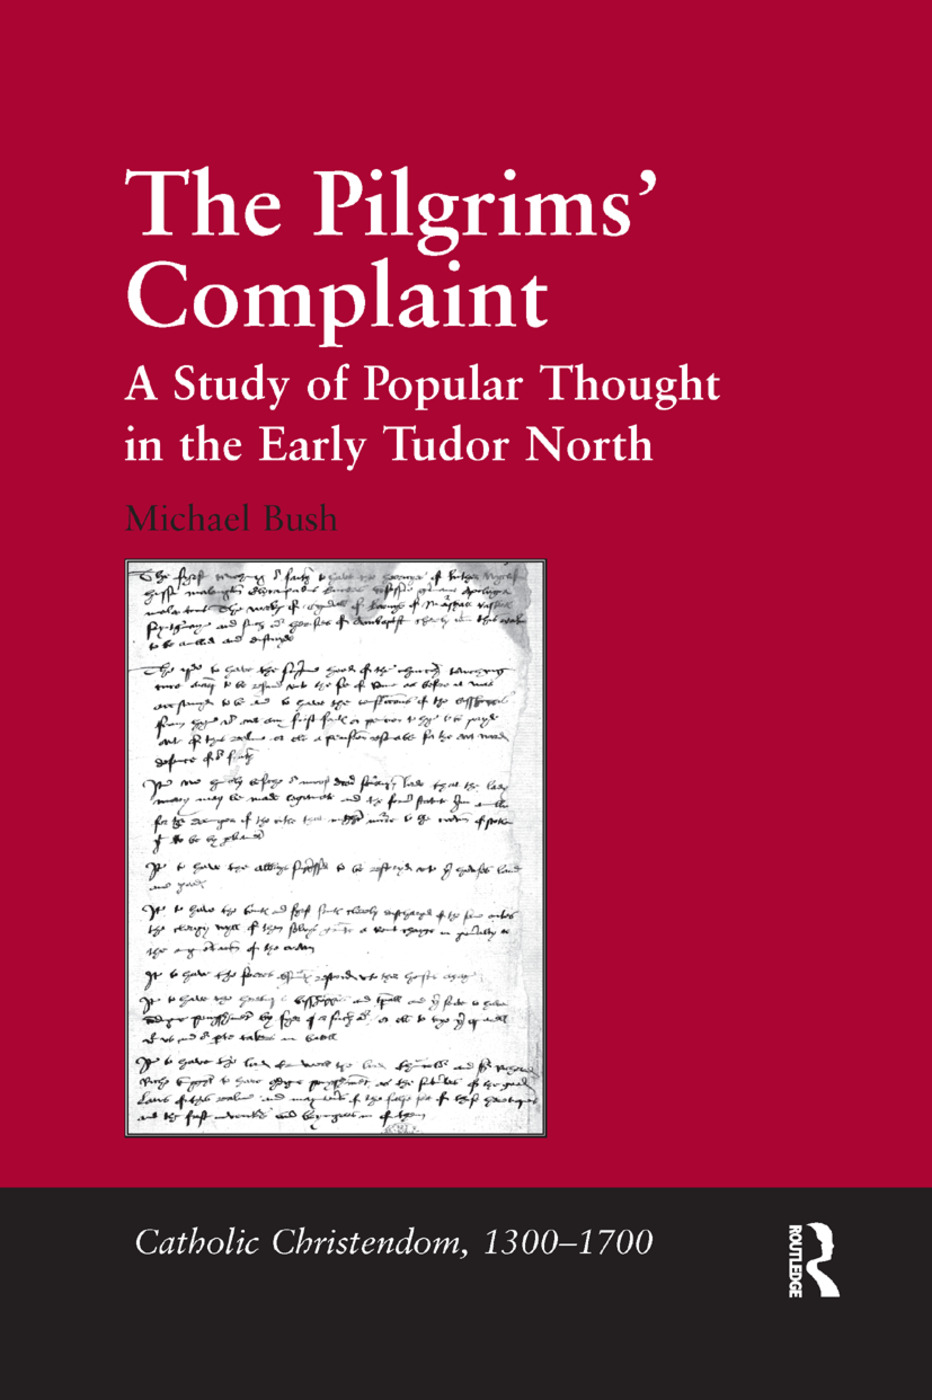 The Pilgrims' Complaint: A Study of Popular Thought in the Early Tudor North book cover